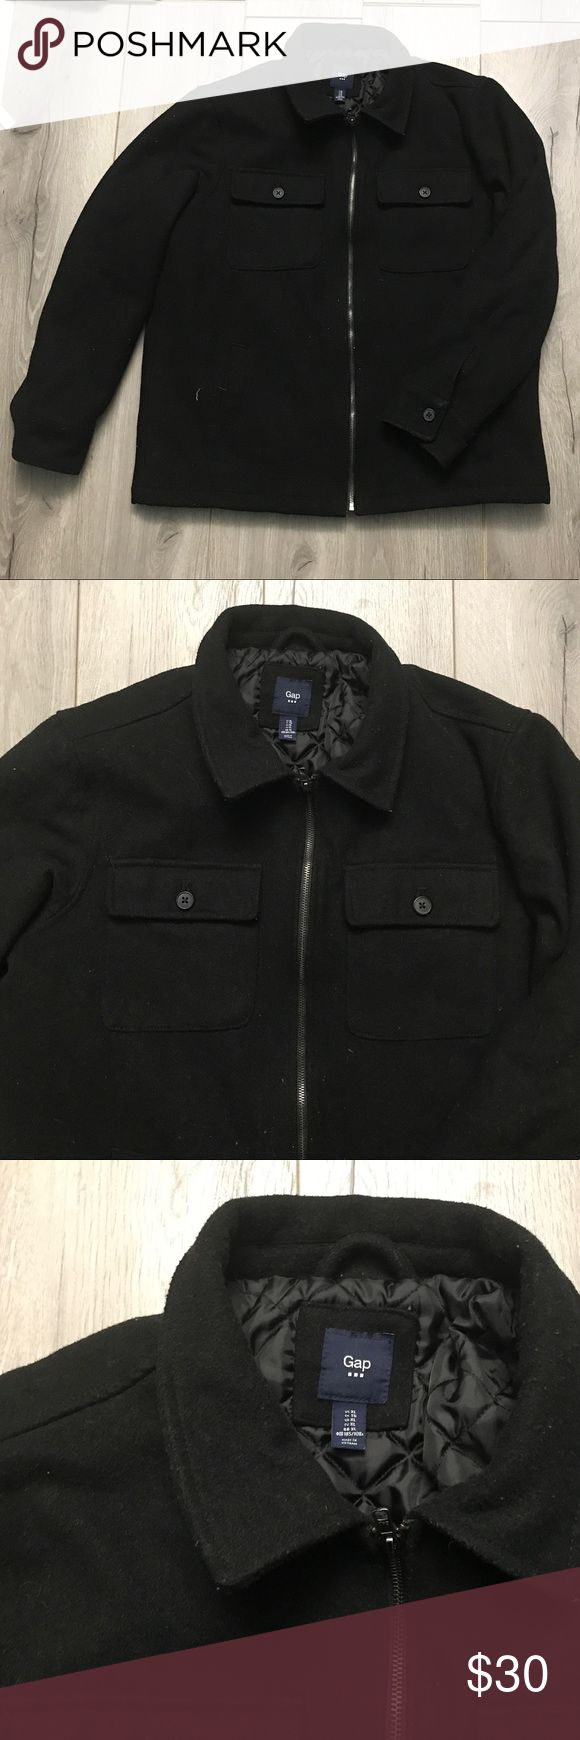 Gap - Jacket (Men's L) Black Jacket, men's X Large. FITS LIKE A LARGE! The white stuff on the jacket is lint, nothing a lint roller won't fix :) in great condition! :) Can also fit a large. taking offers! GAP Jackets & Coats